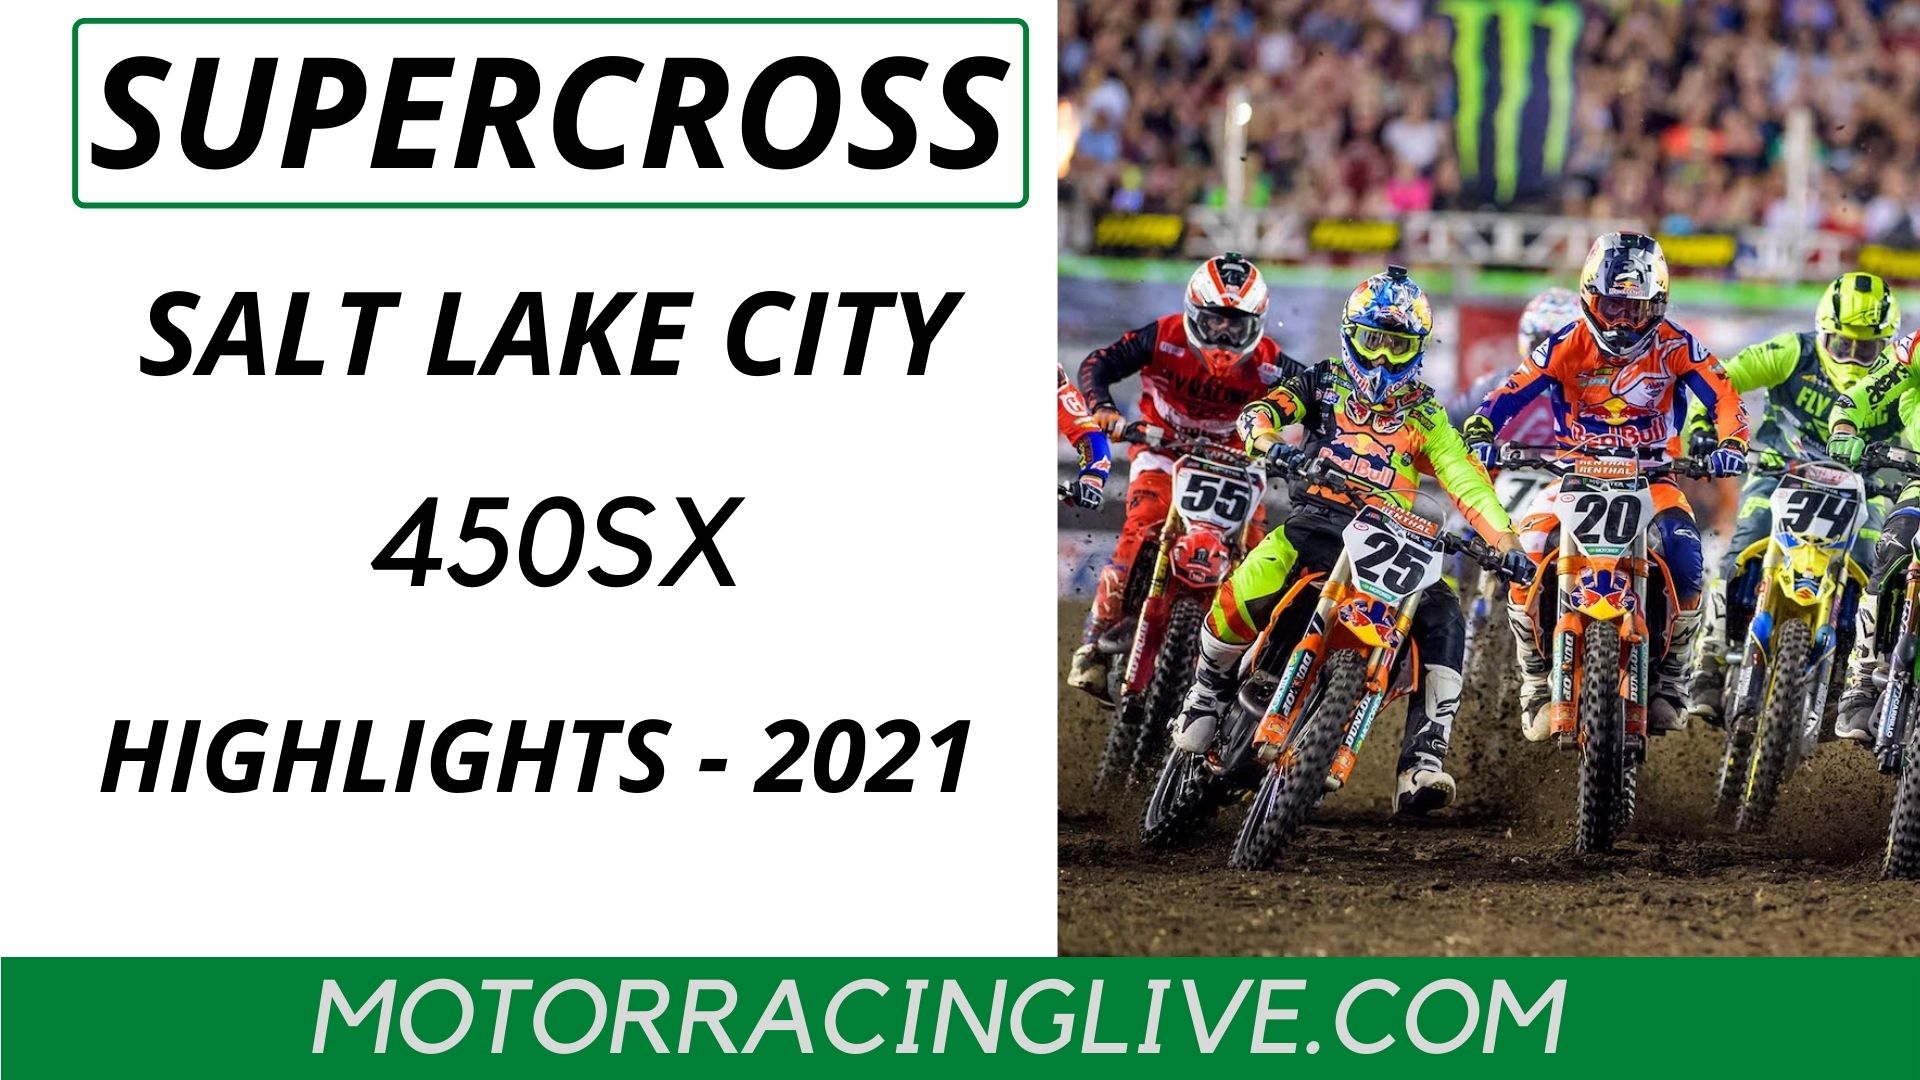 Salt Lake City Round 16 450SX Highlights 2021 Supercross